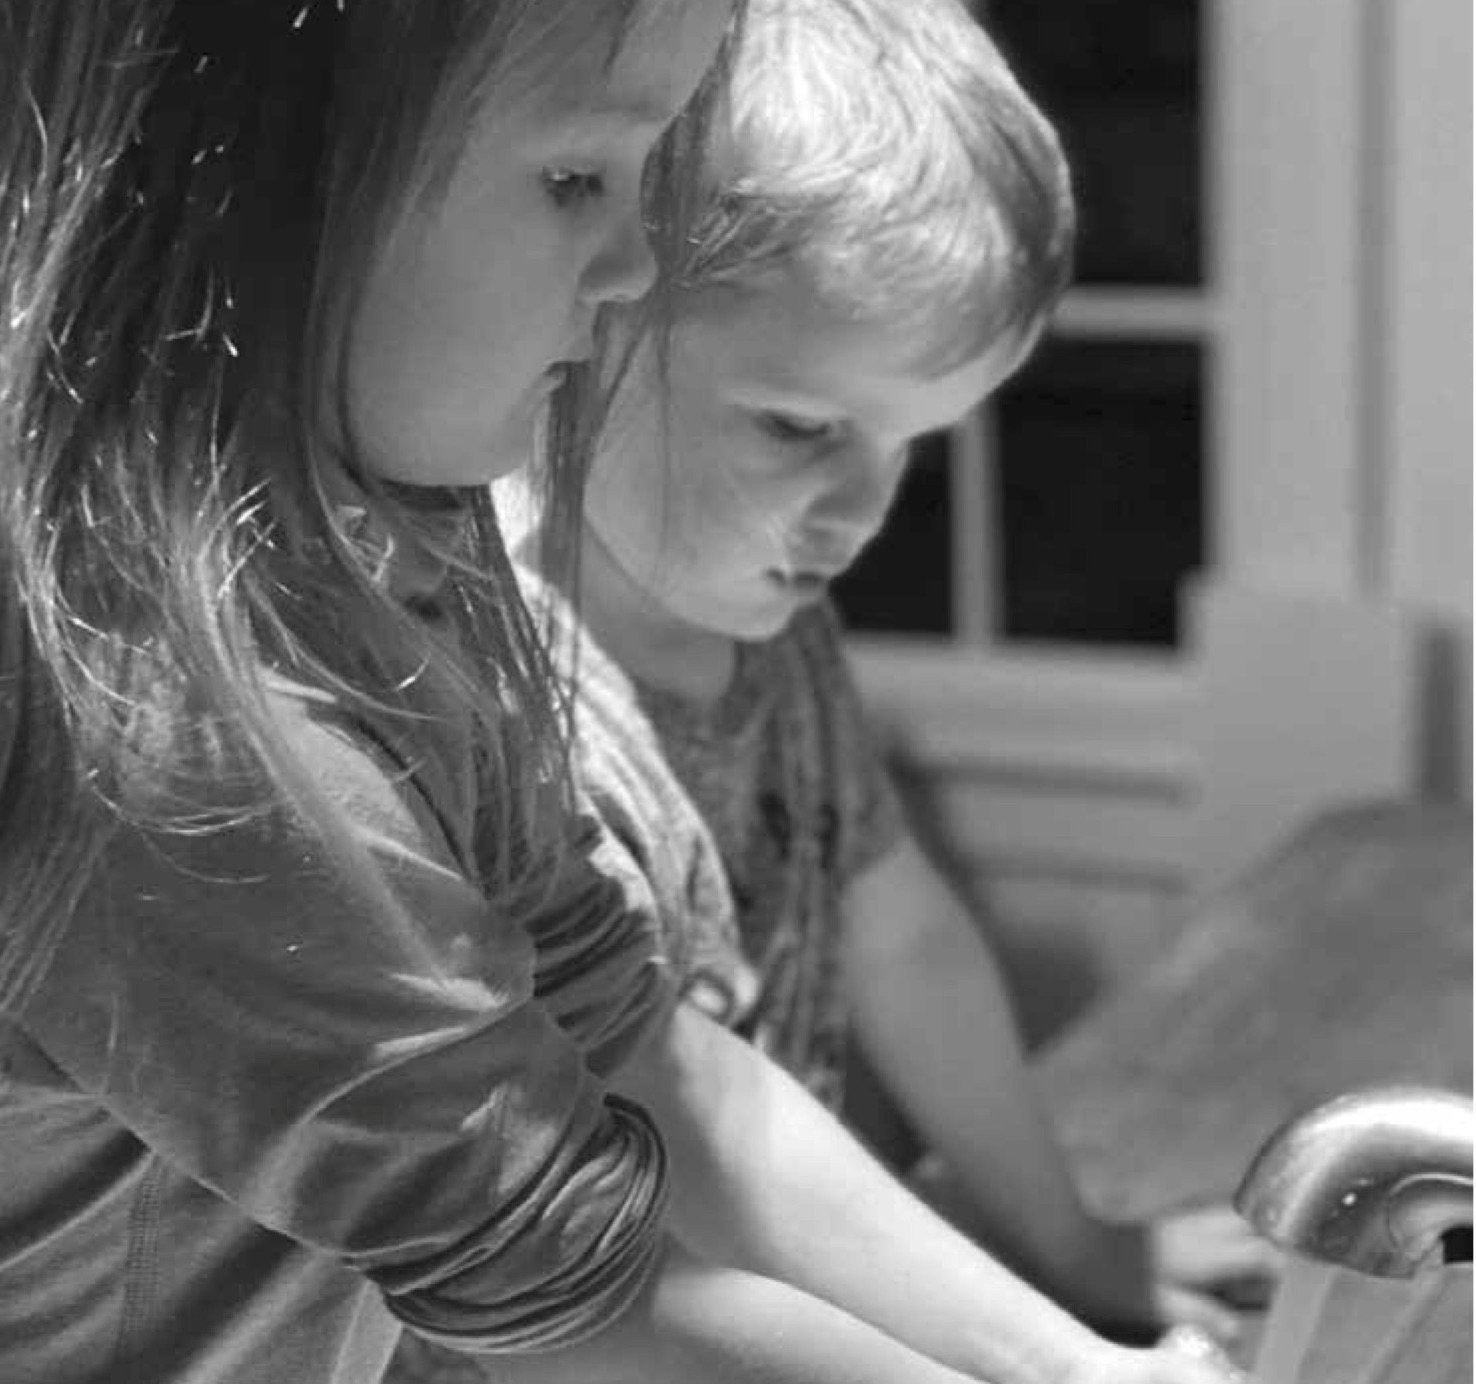 Big sister Makena Berube, aged 4, from Bayport, helps her younger brother Jack, age 3, learn the intricacies of hand-washing.